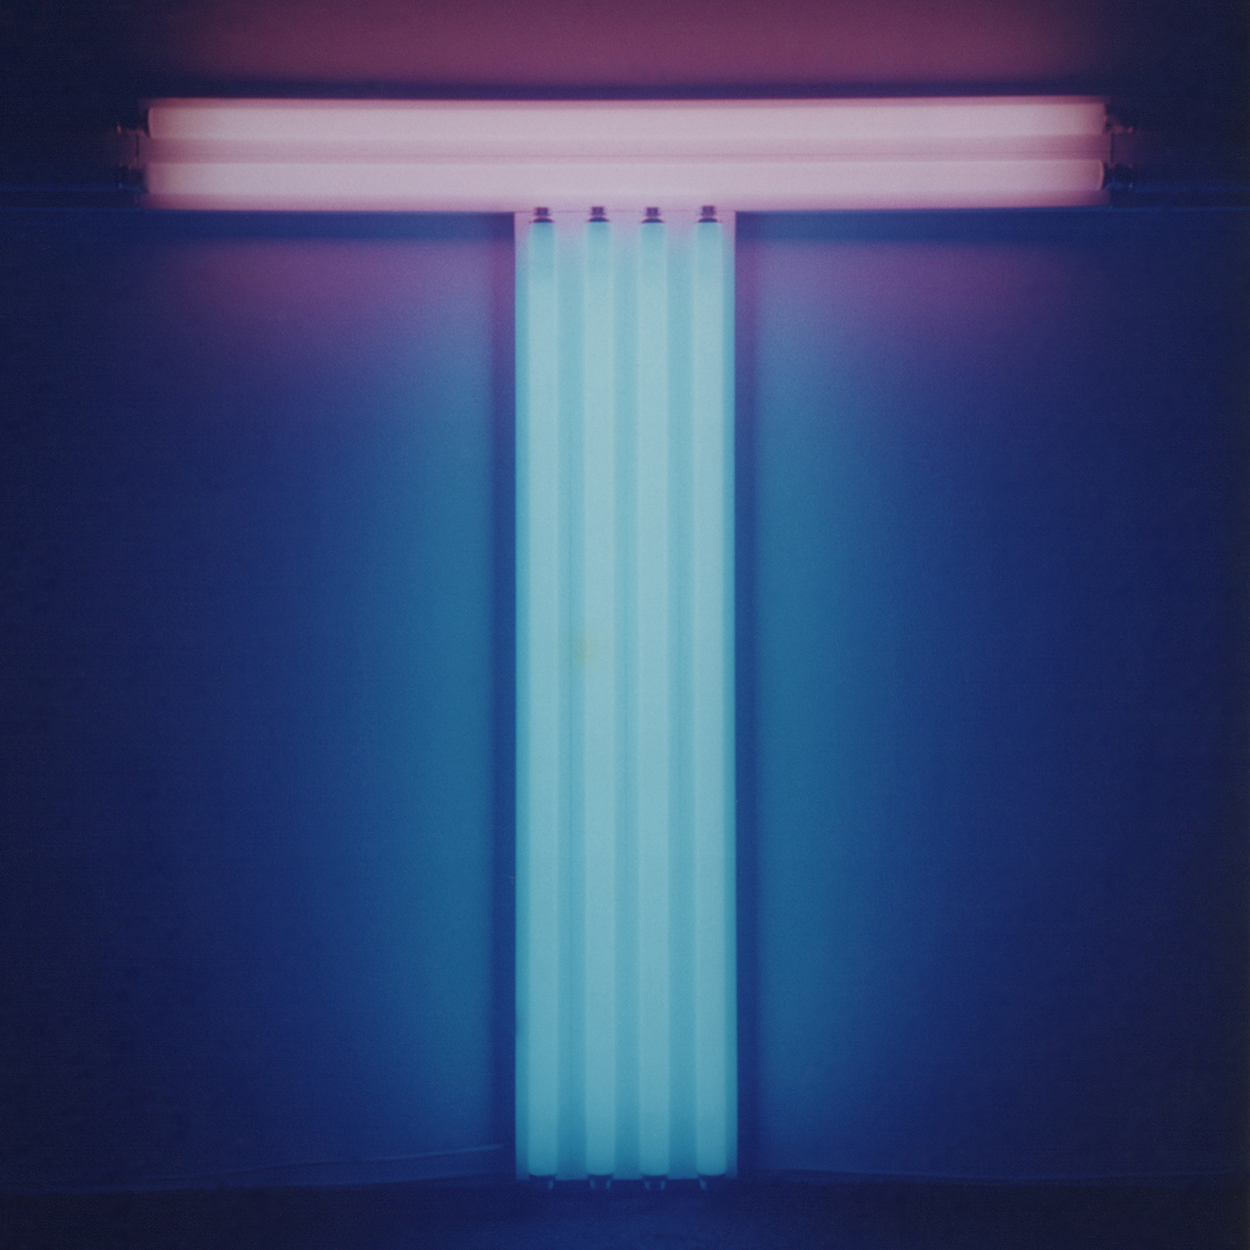 Untitled (To Don Judd, colorist)|blue and pink fluorescent lights|137 x 122 x 10 cm|1987